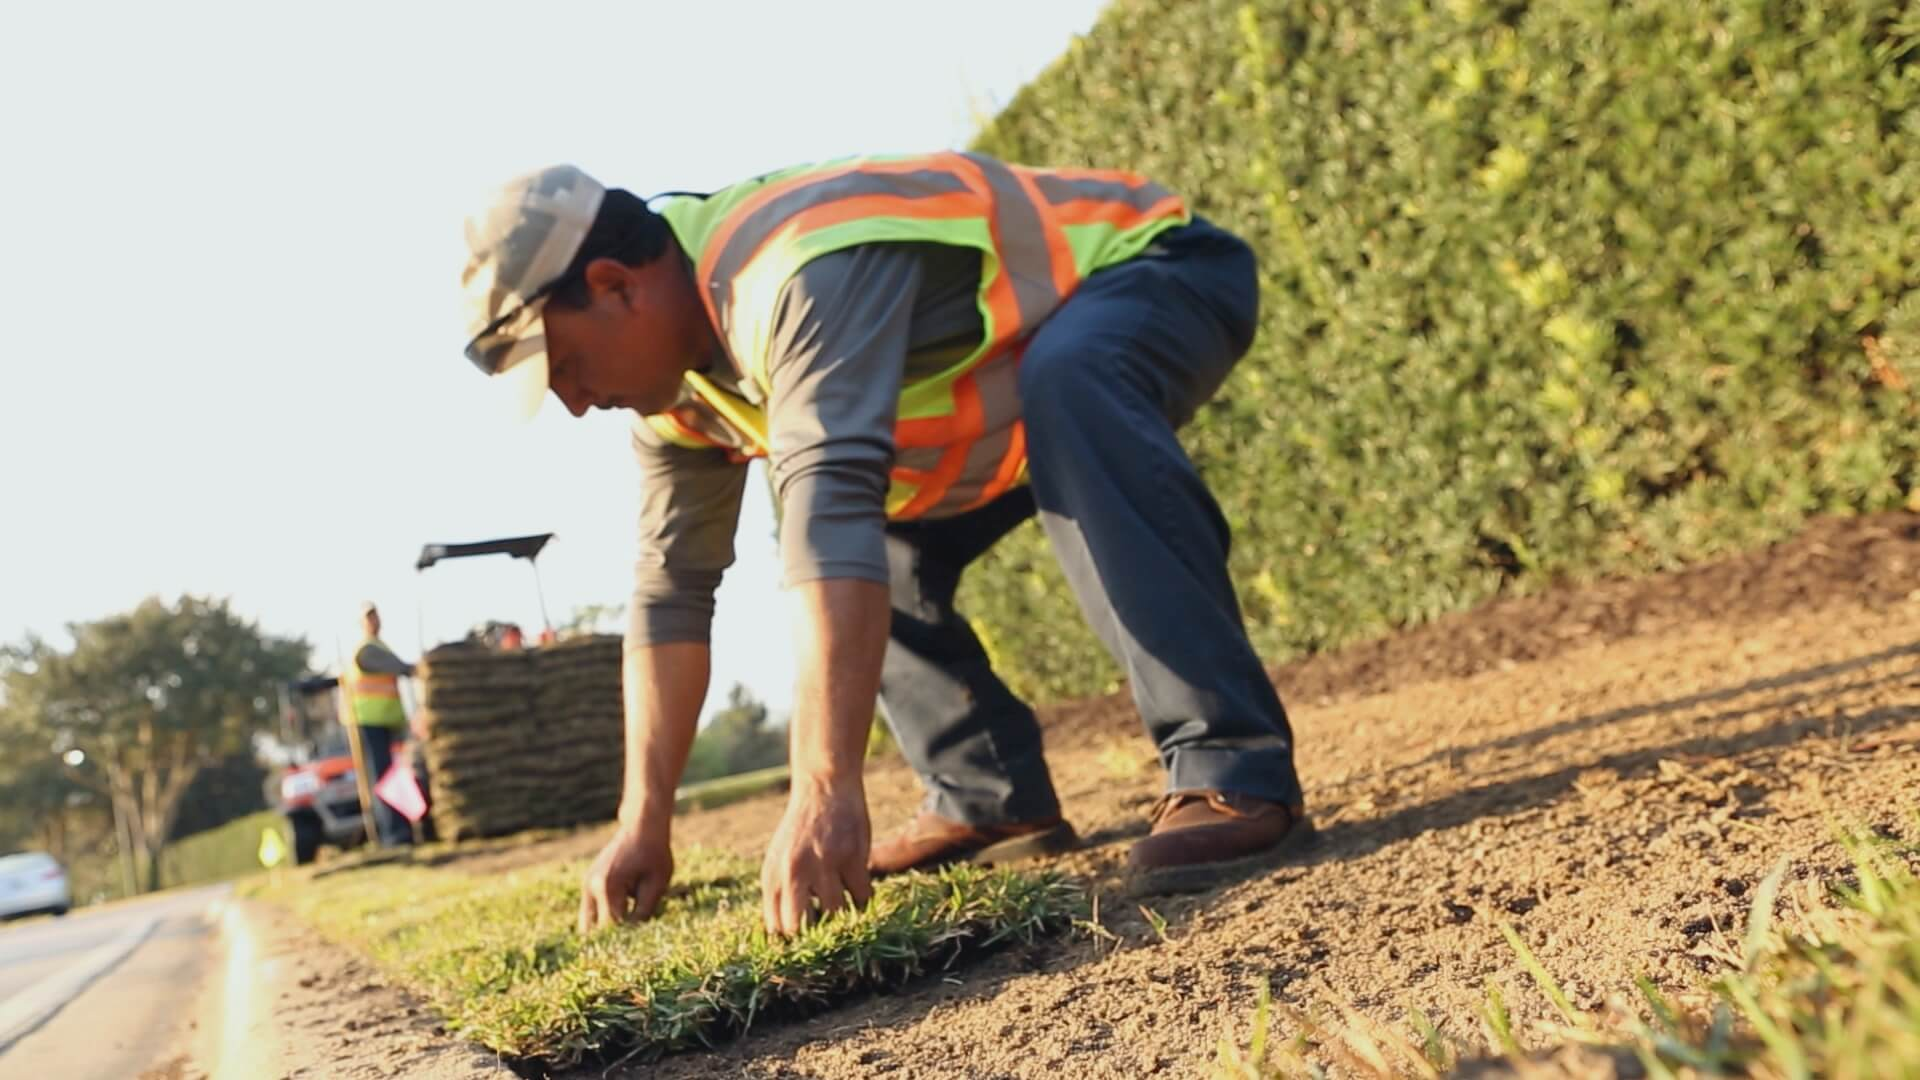 Lawn Care Technician Description – Landscape Industry Careers